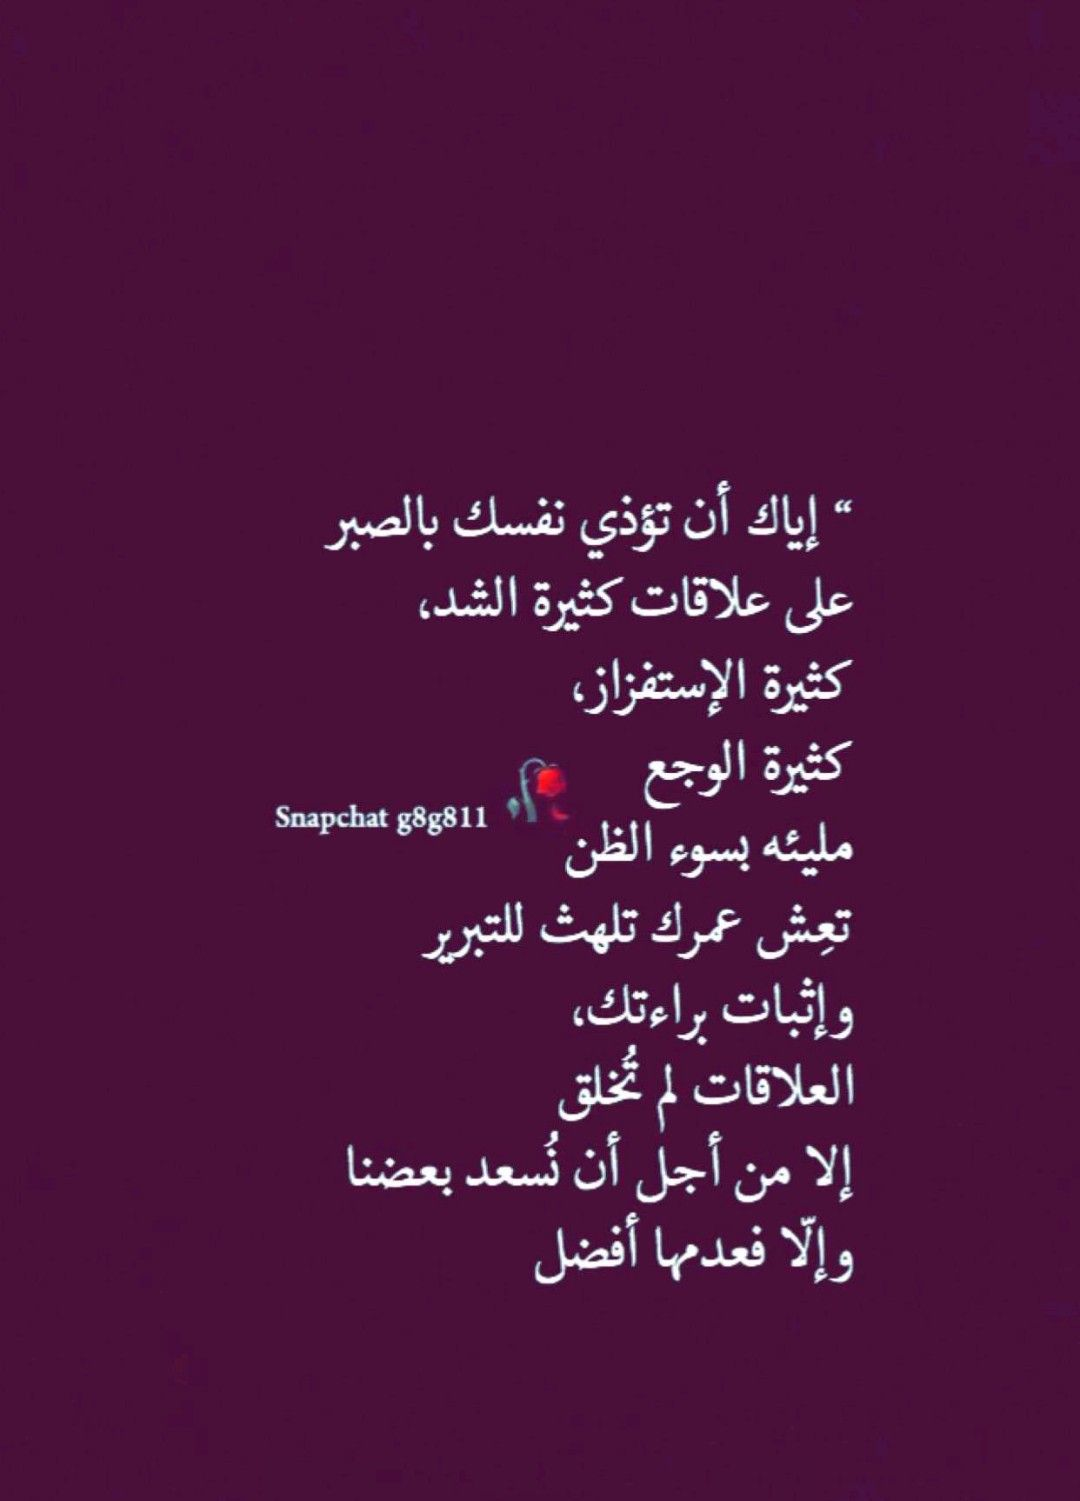 Pin By بتول محمد On كلام أعجبني Quotes Sayings Qoutes